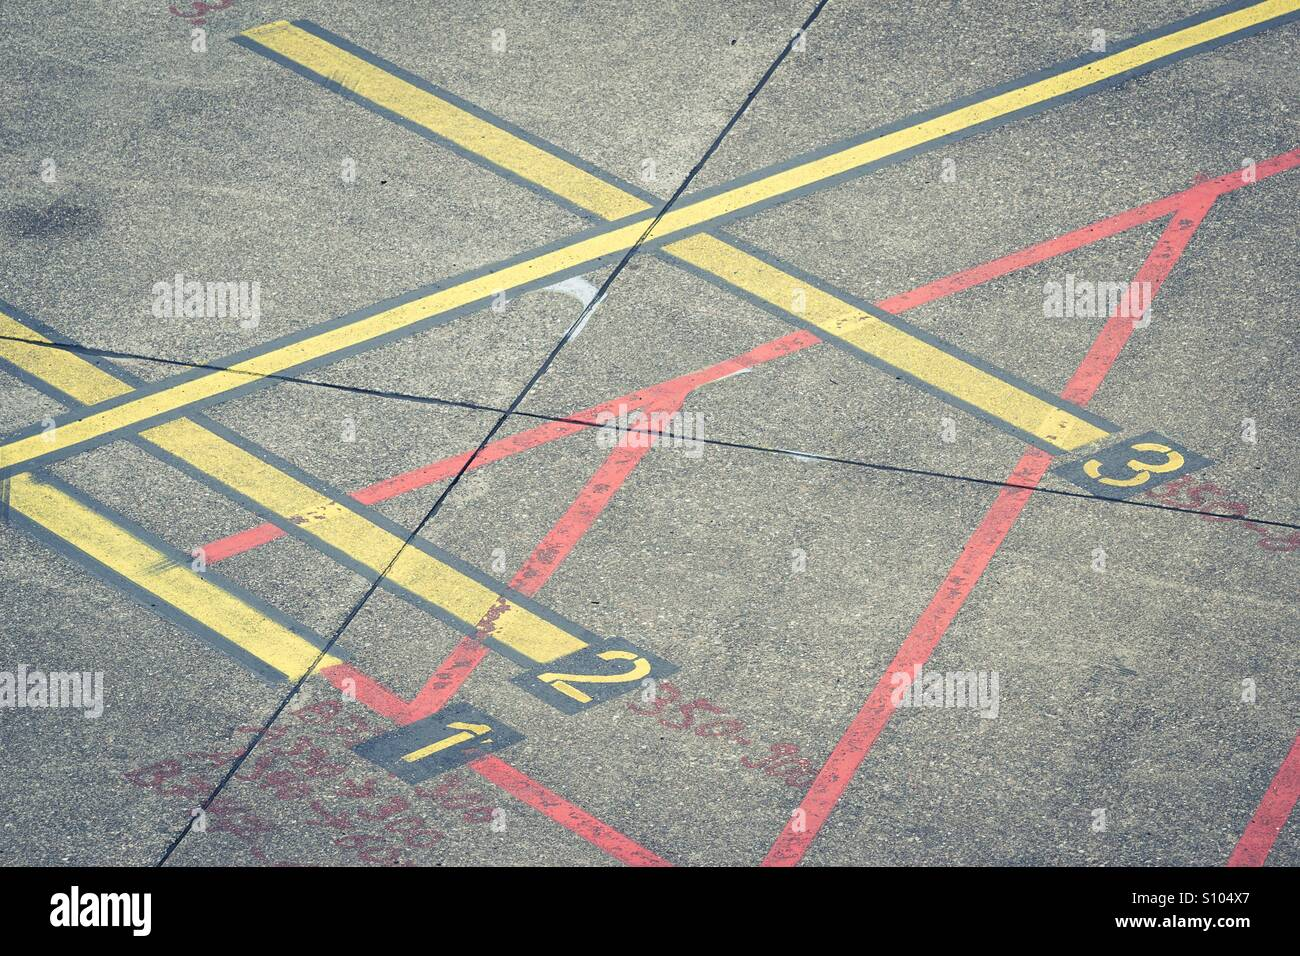 Markings on airport apron Stock Photo: 310405151 - Alamy